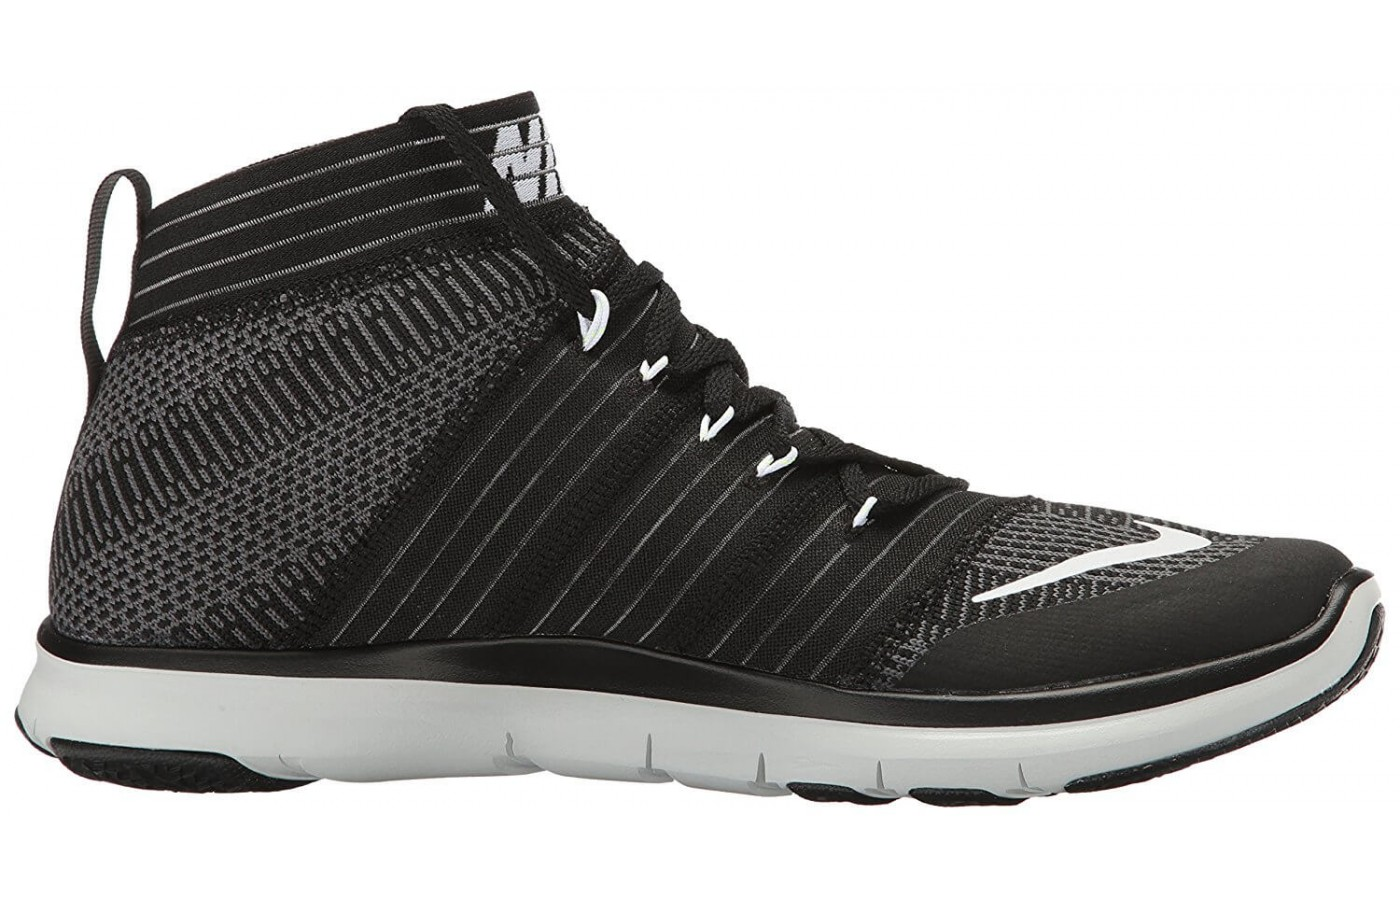 The Nike Free Train Virtue features a wide stable outsole design